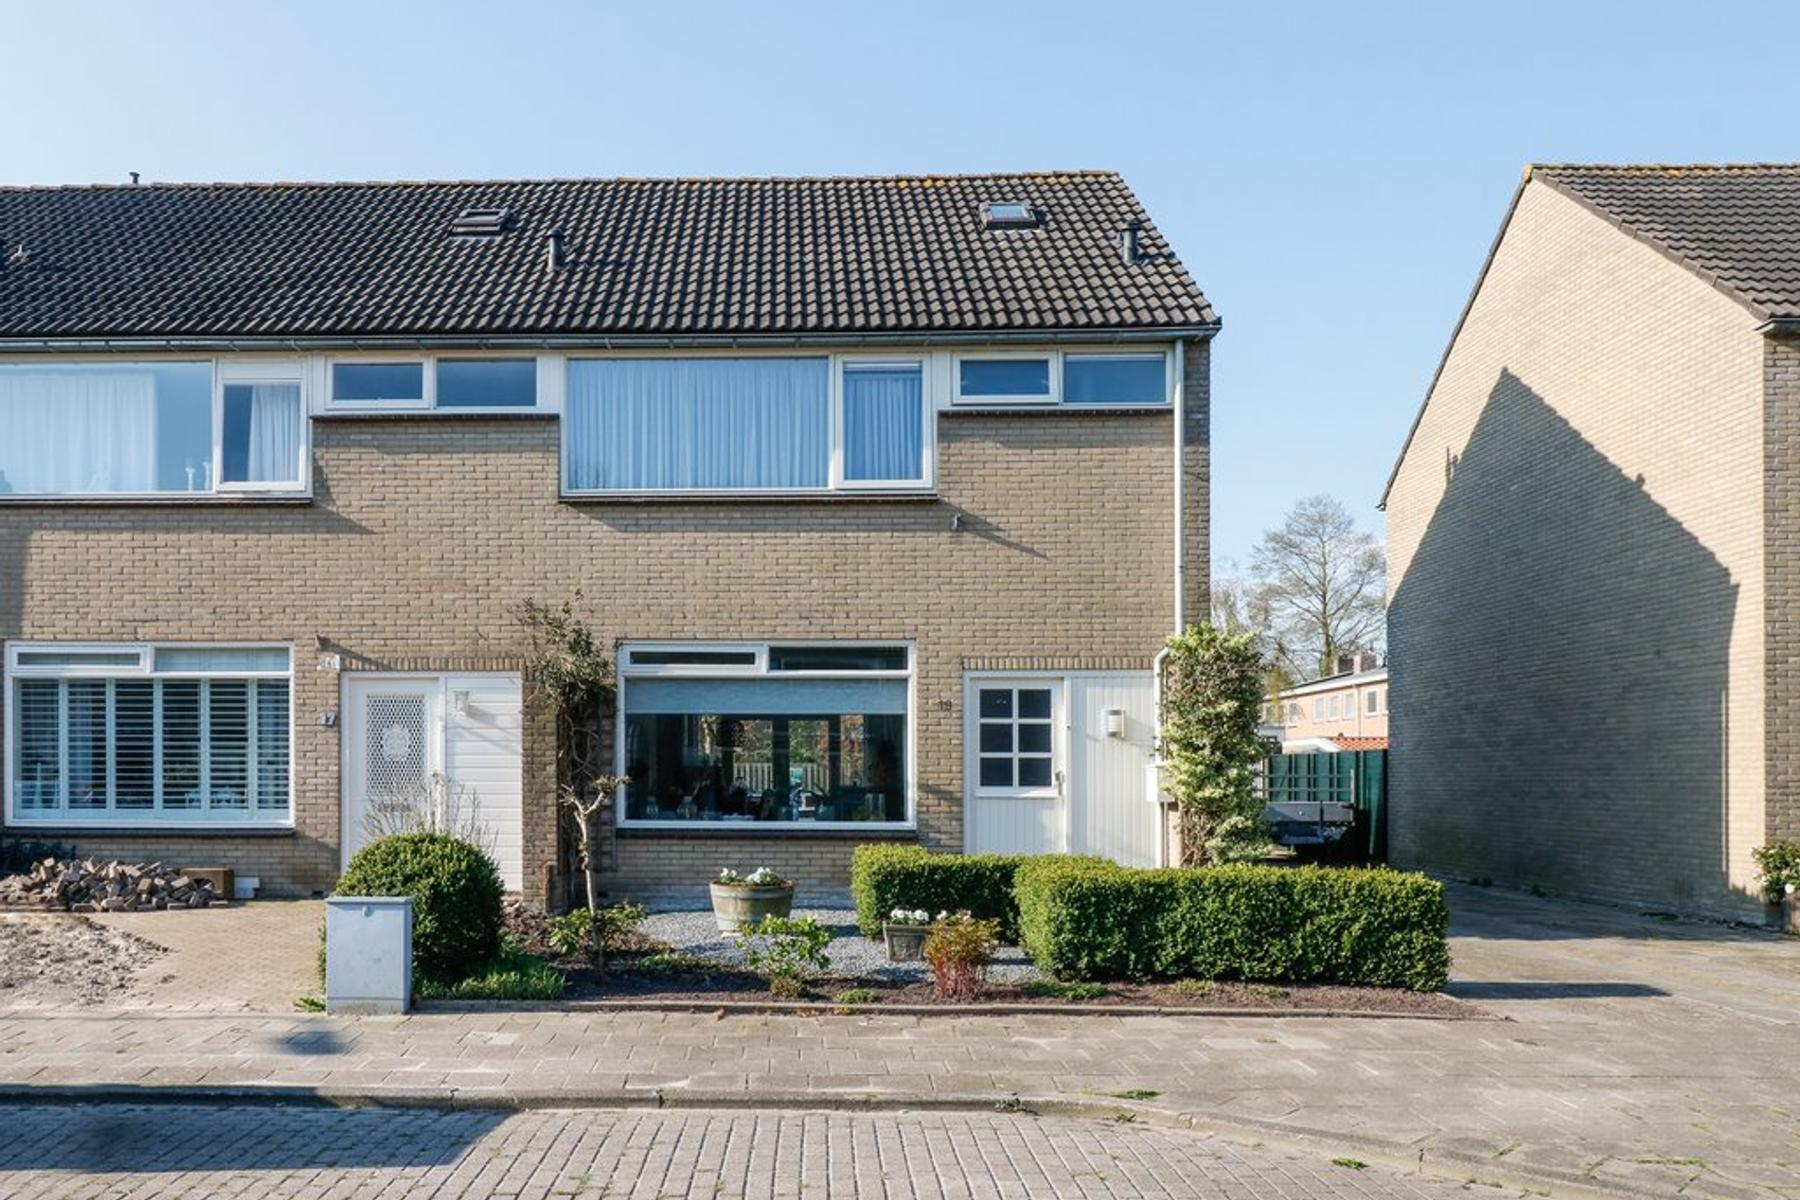 Dr. W. Dreesstraat 19 in Sneek 8603 CT